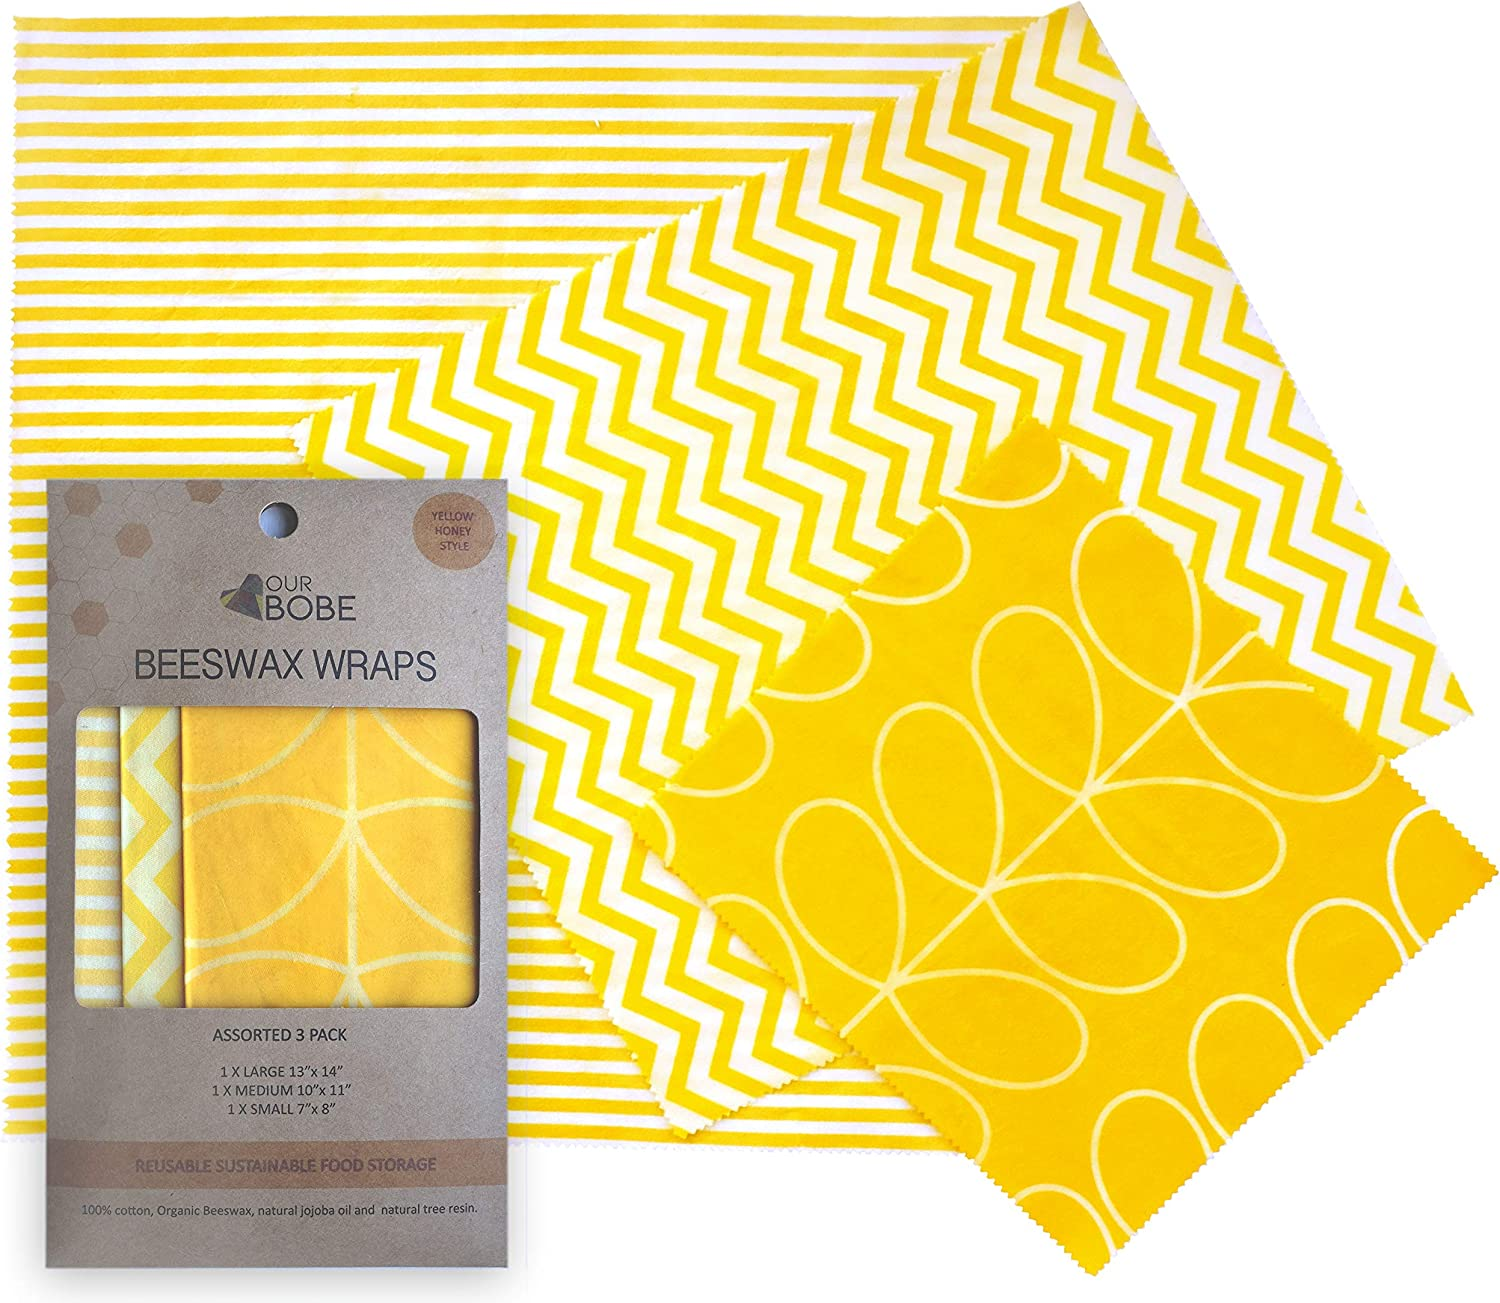 Ourbobe Beeswax Food Wrap Organic and Reusable | Assorted 3-Pack: Small, Medium, and Large | Eco Friendly Zero Waste Food Storage | A Sustainable Plastic Wrap Alternative.